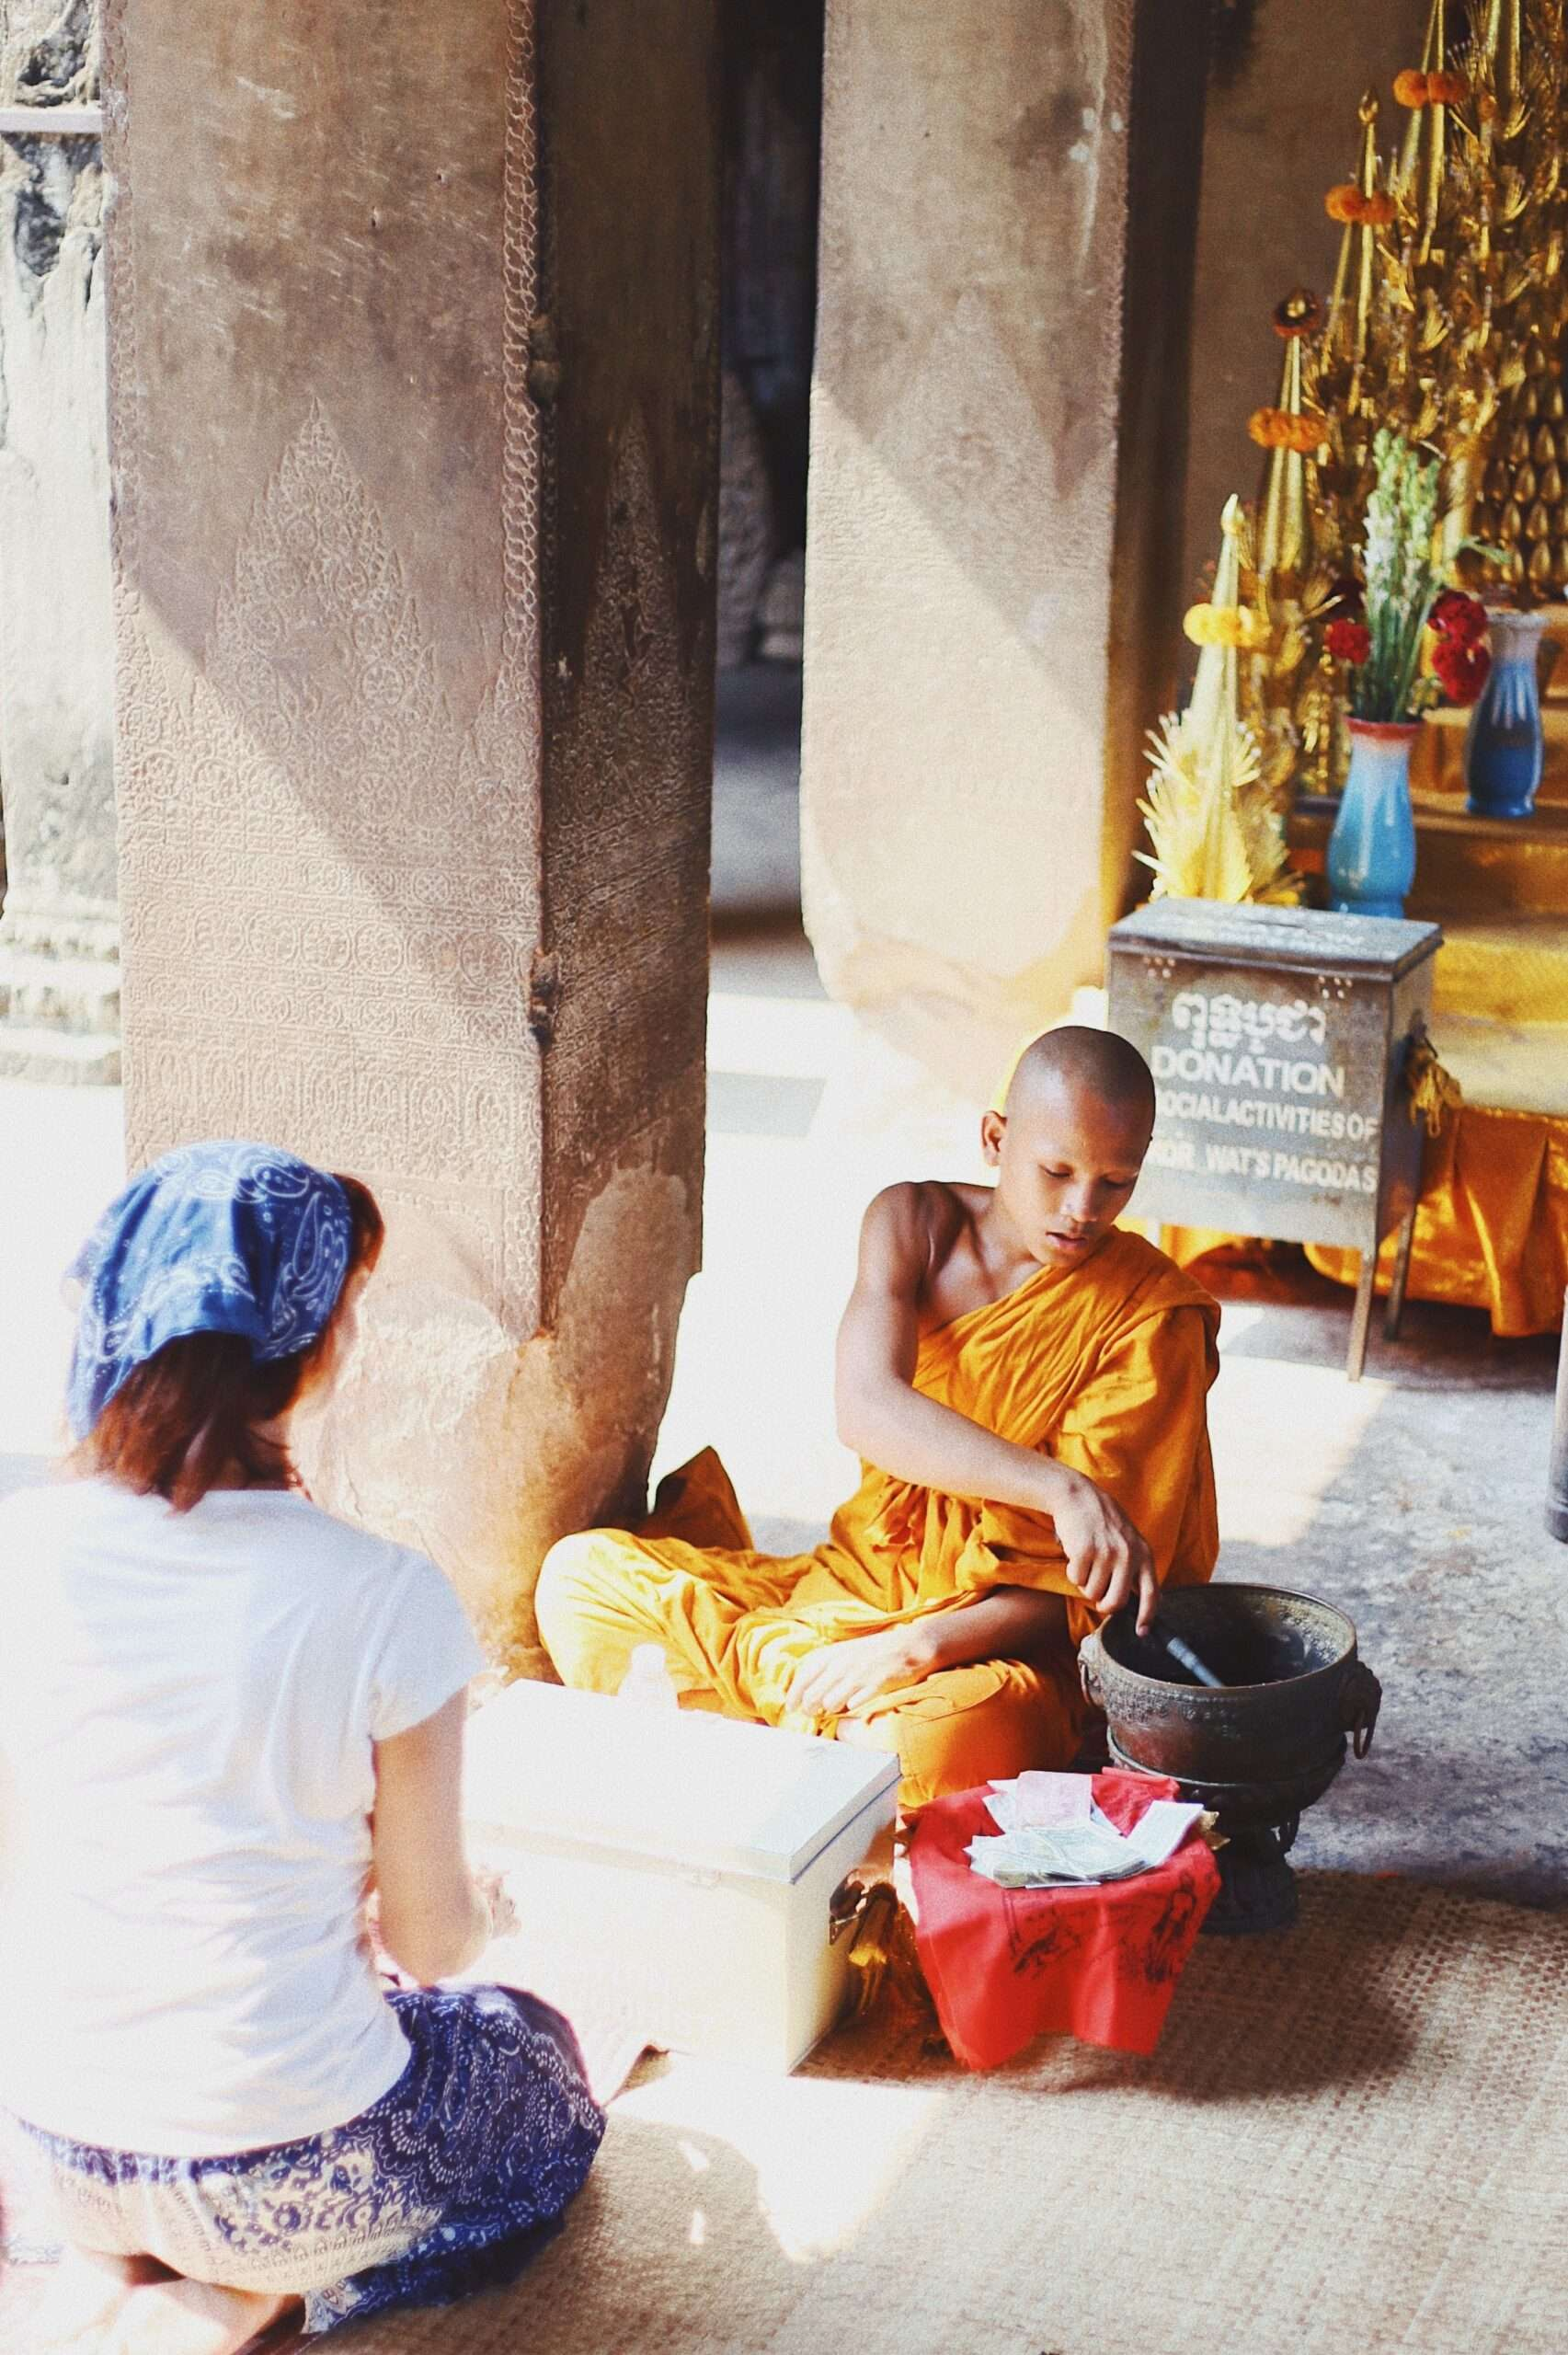 young monk blesses a female tourist inside the temples during a visit to Angkor Wat